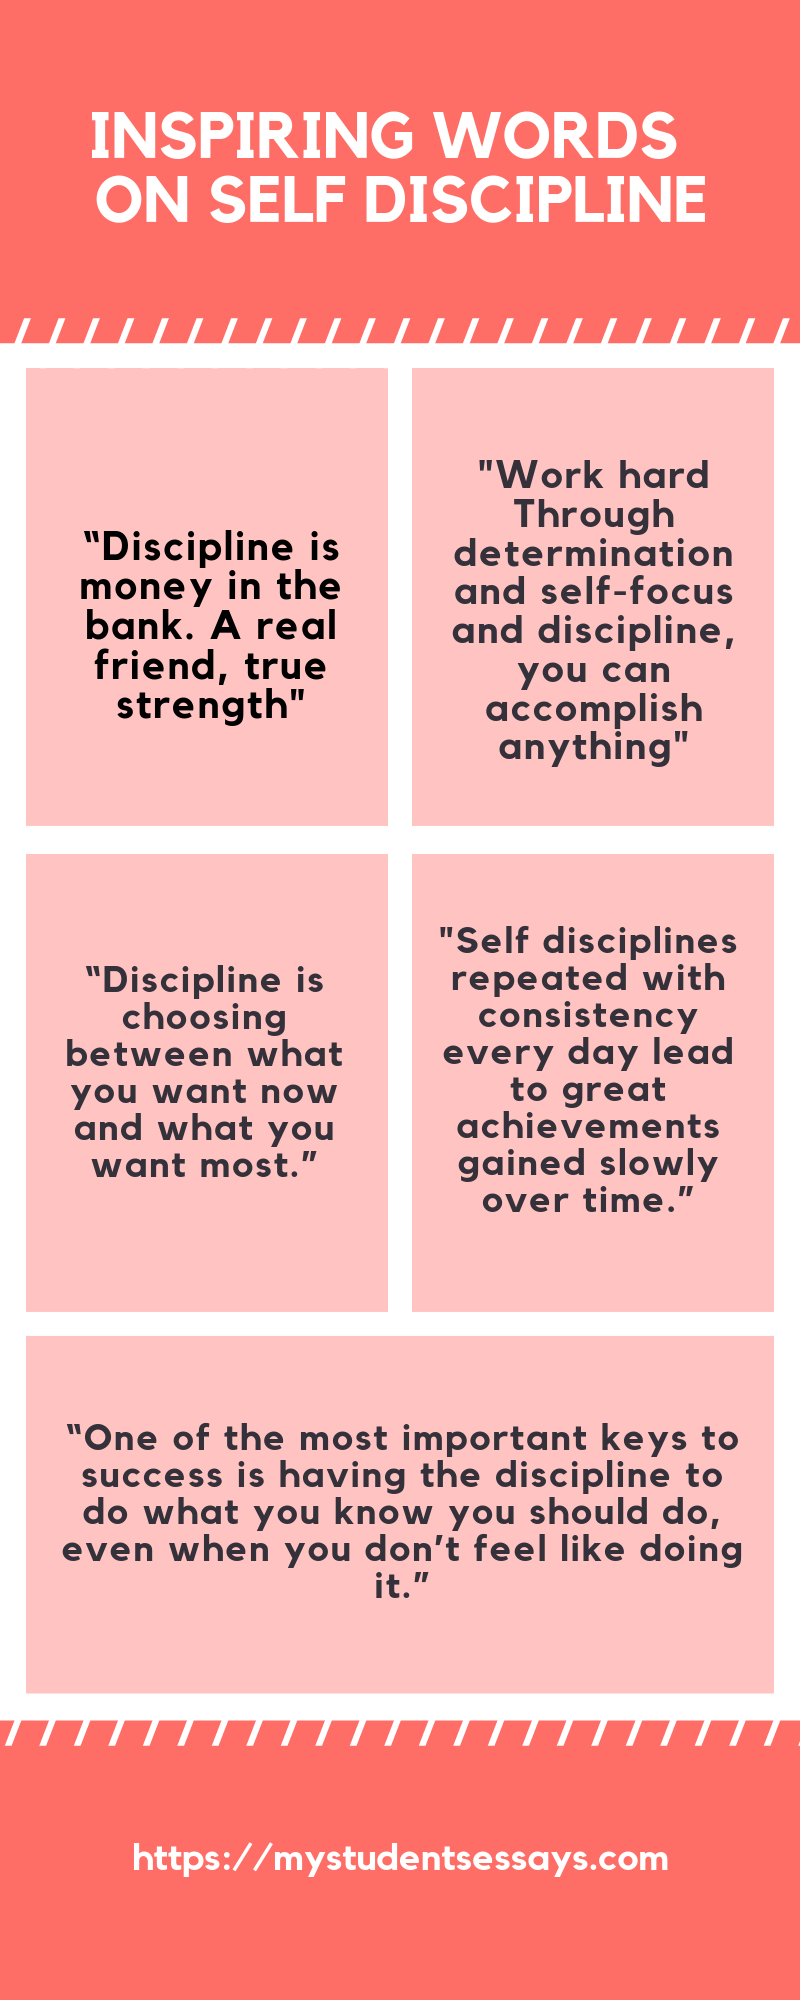 value and importance of self discipline in life essay, speech, paragraph